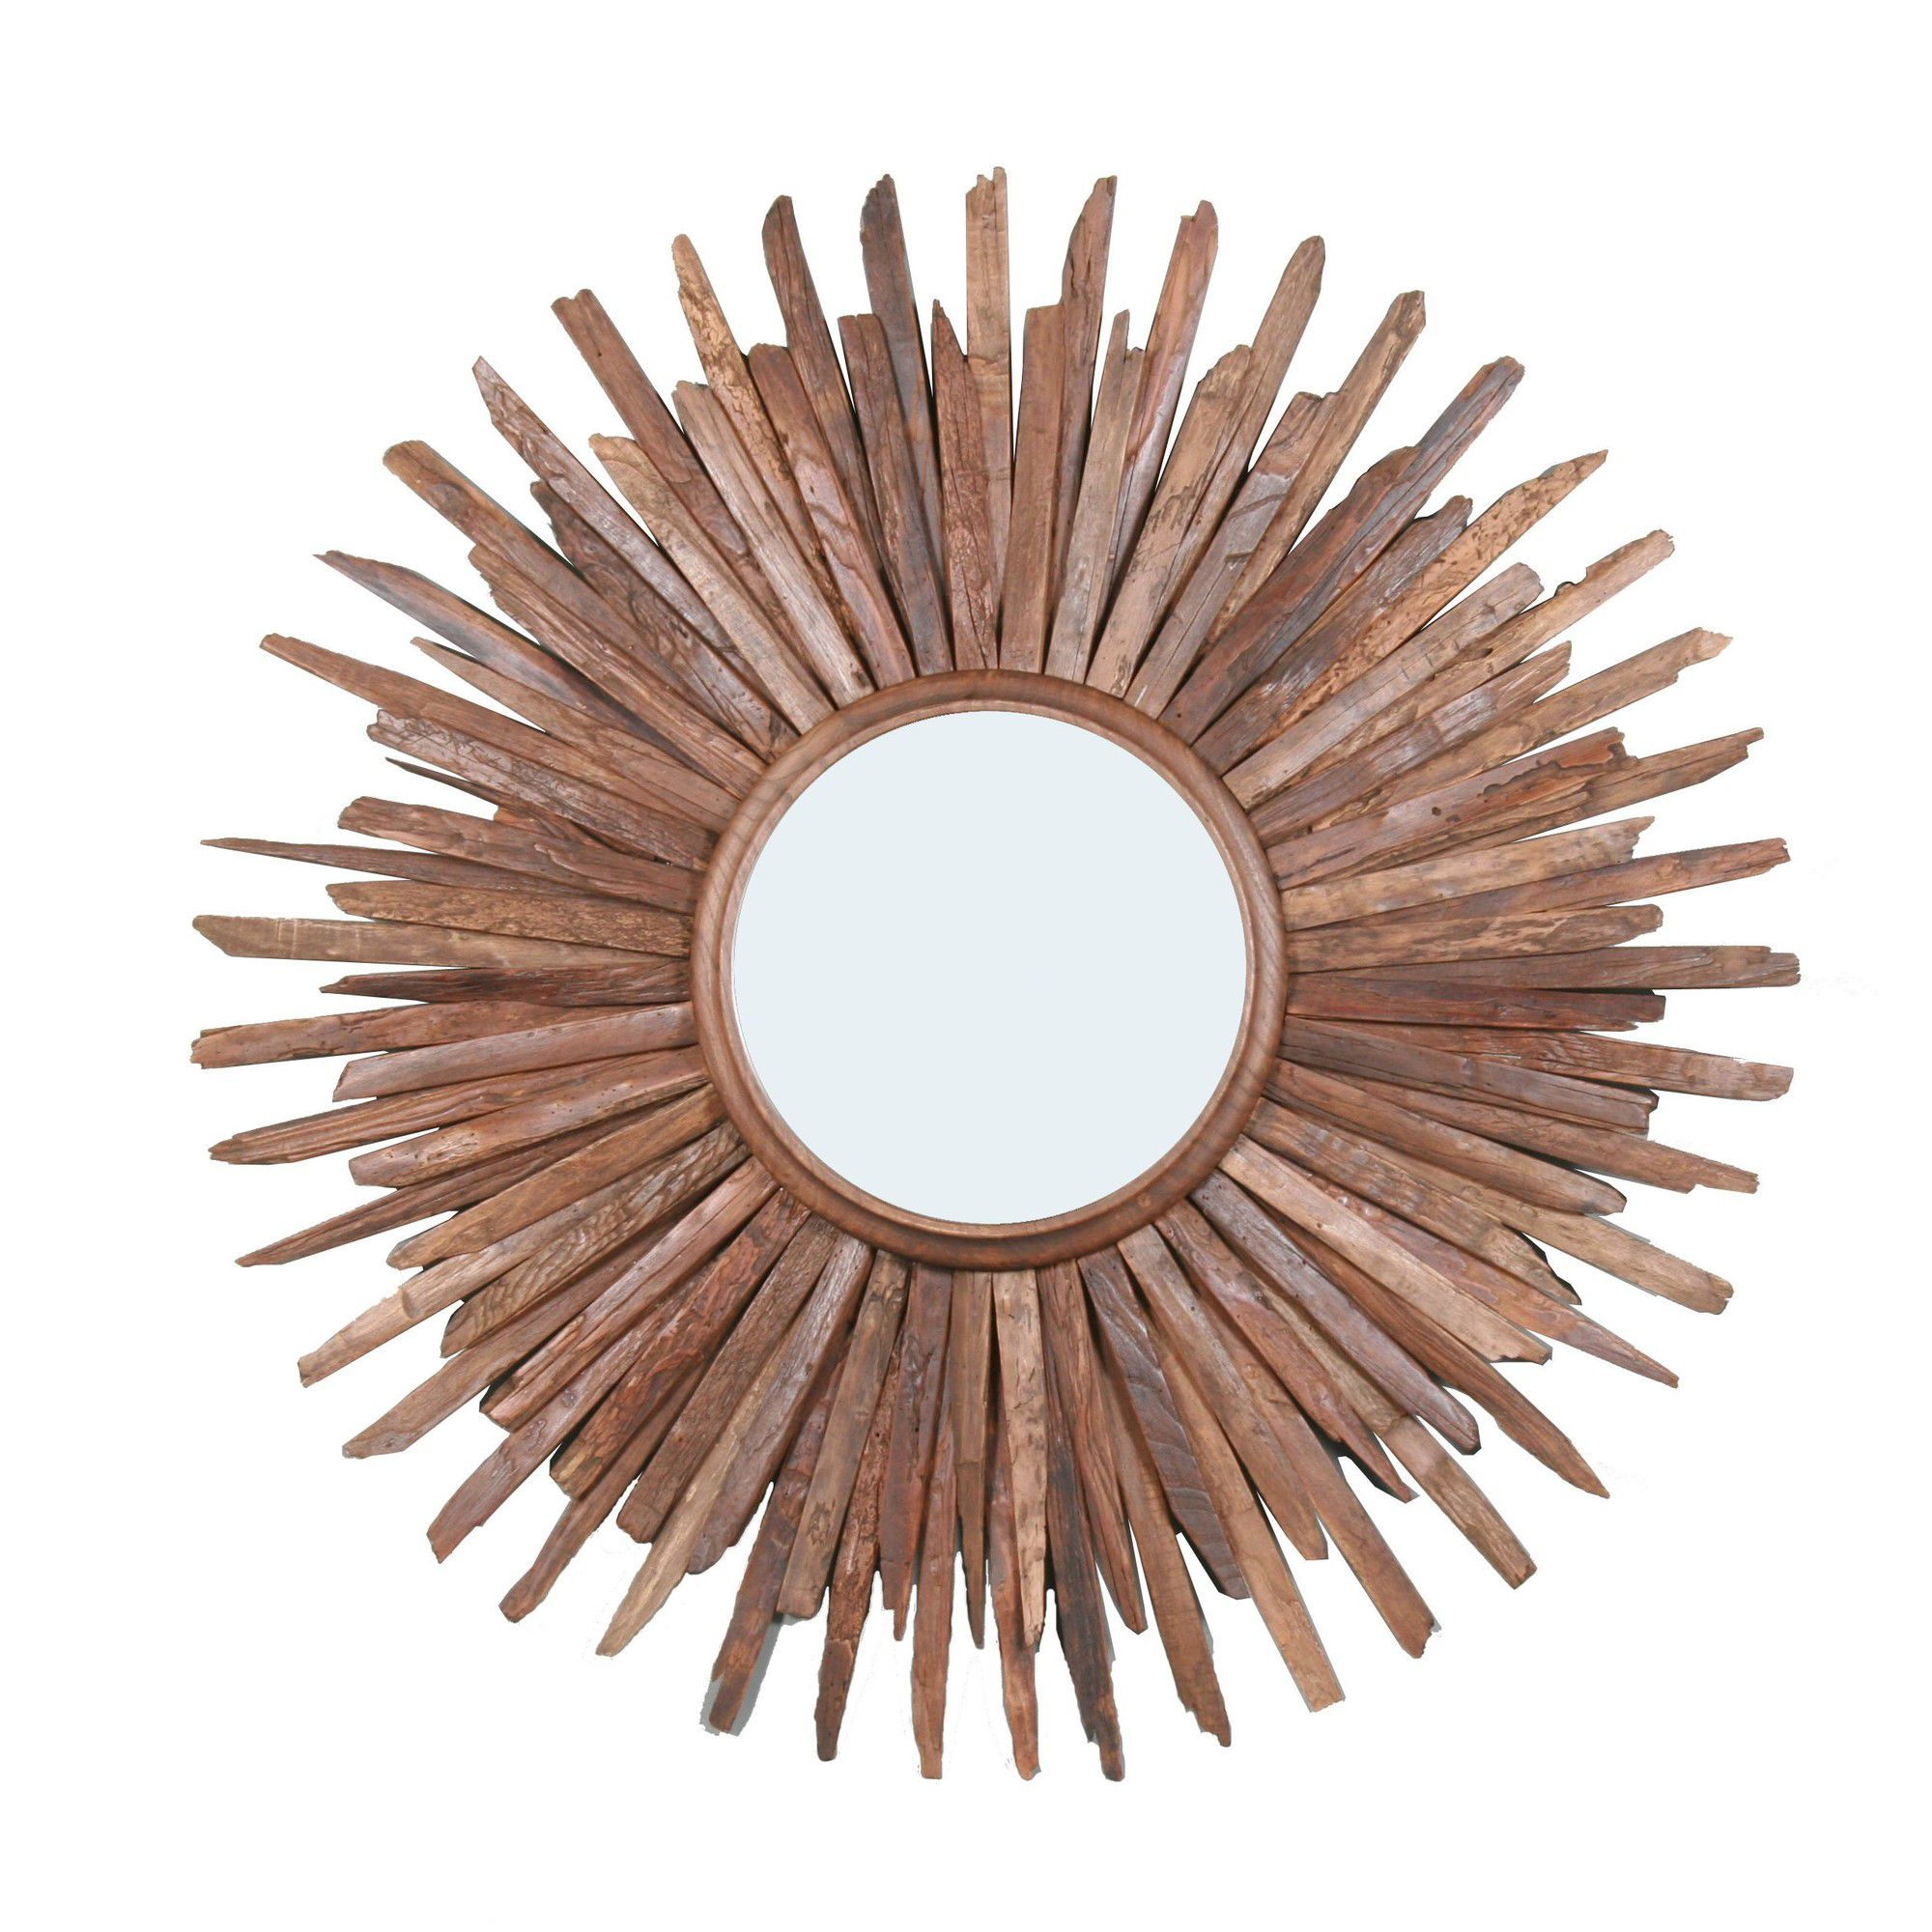 Katigi Designs Round Mirror at Tesco Direct